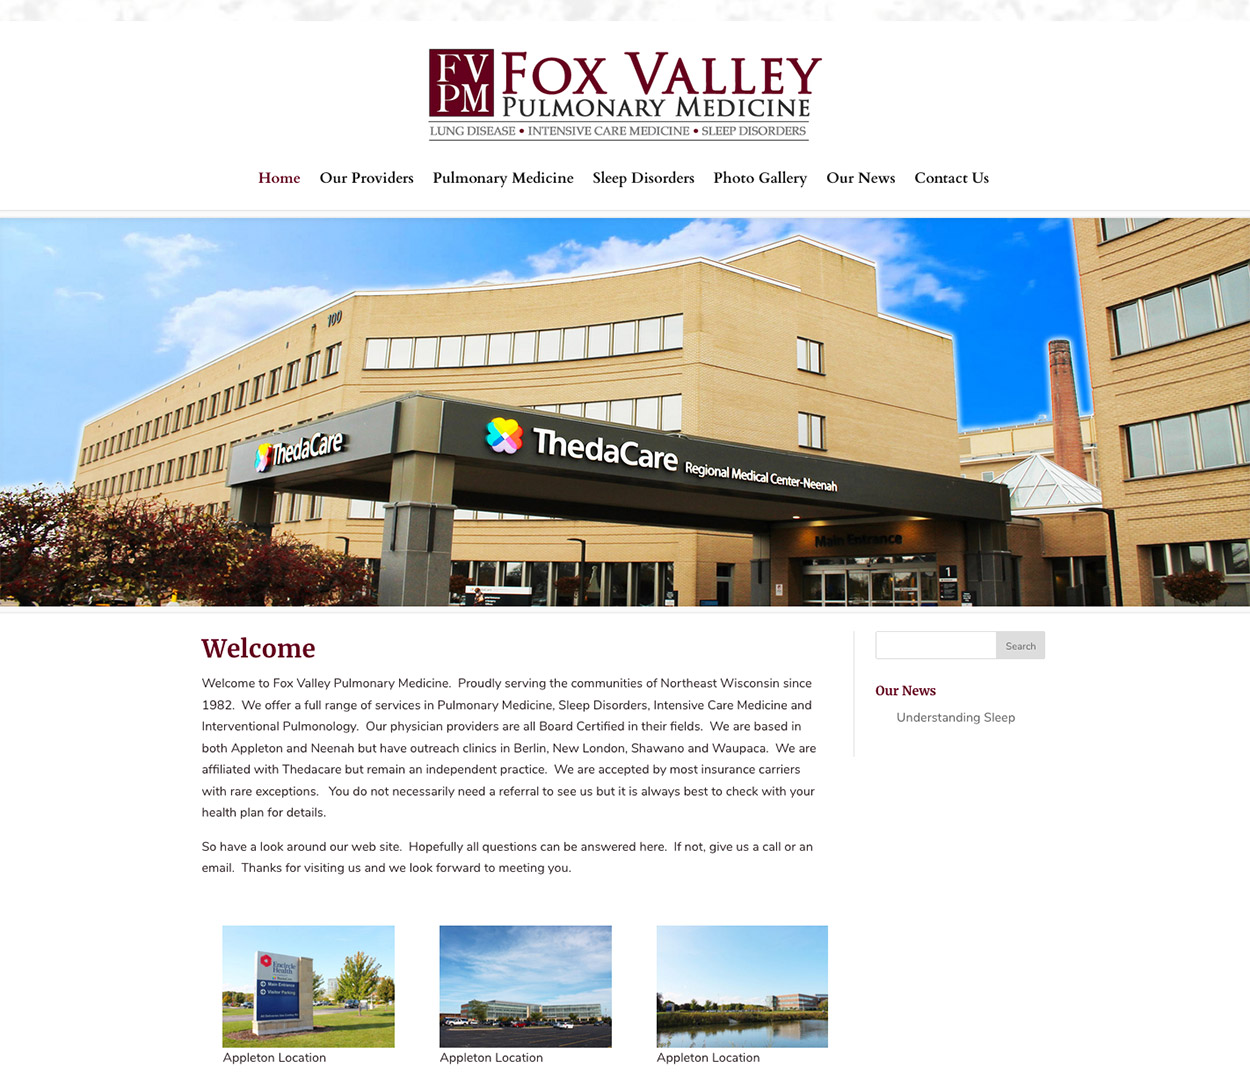 Medical website design,hospital website design,wisconsin website designers,american website designers,fvwd,Fox Valley  WI Doctors, Fox Valley Pulmonary Medicine,ThedaCare, Pulmonary Medicine, Sleep Disorders, Intensive Care Medicine,Interventional Pulmonology, Appleton,Neenah, Berlin, New London, Shawano,Waupaca